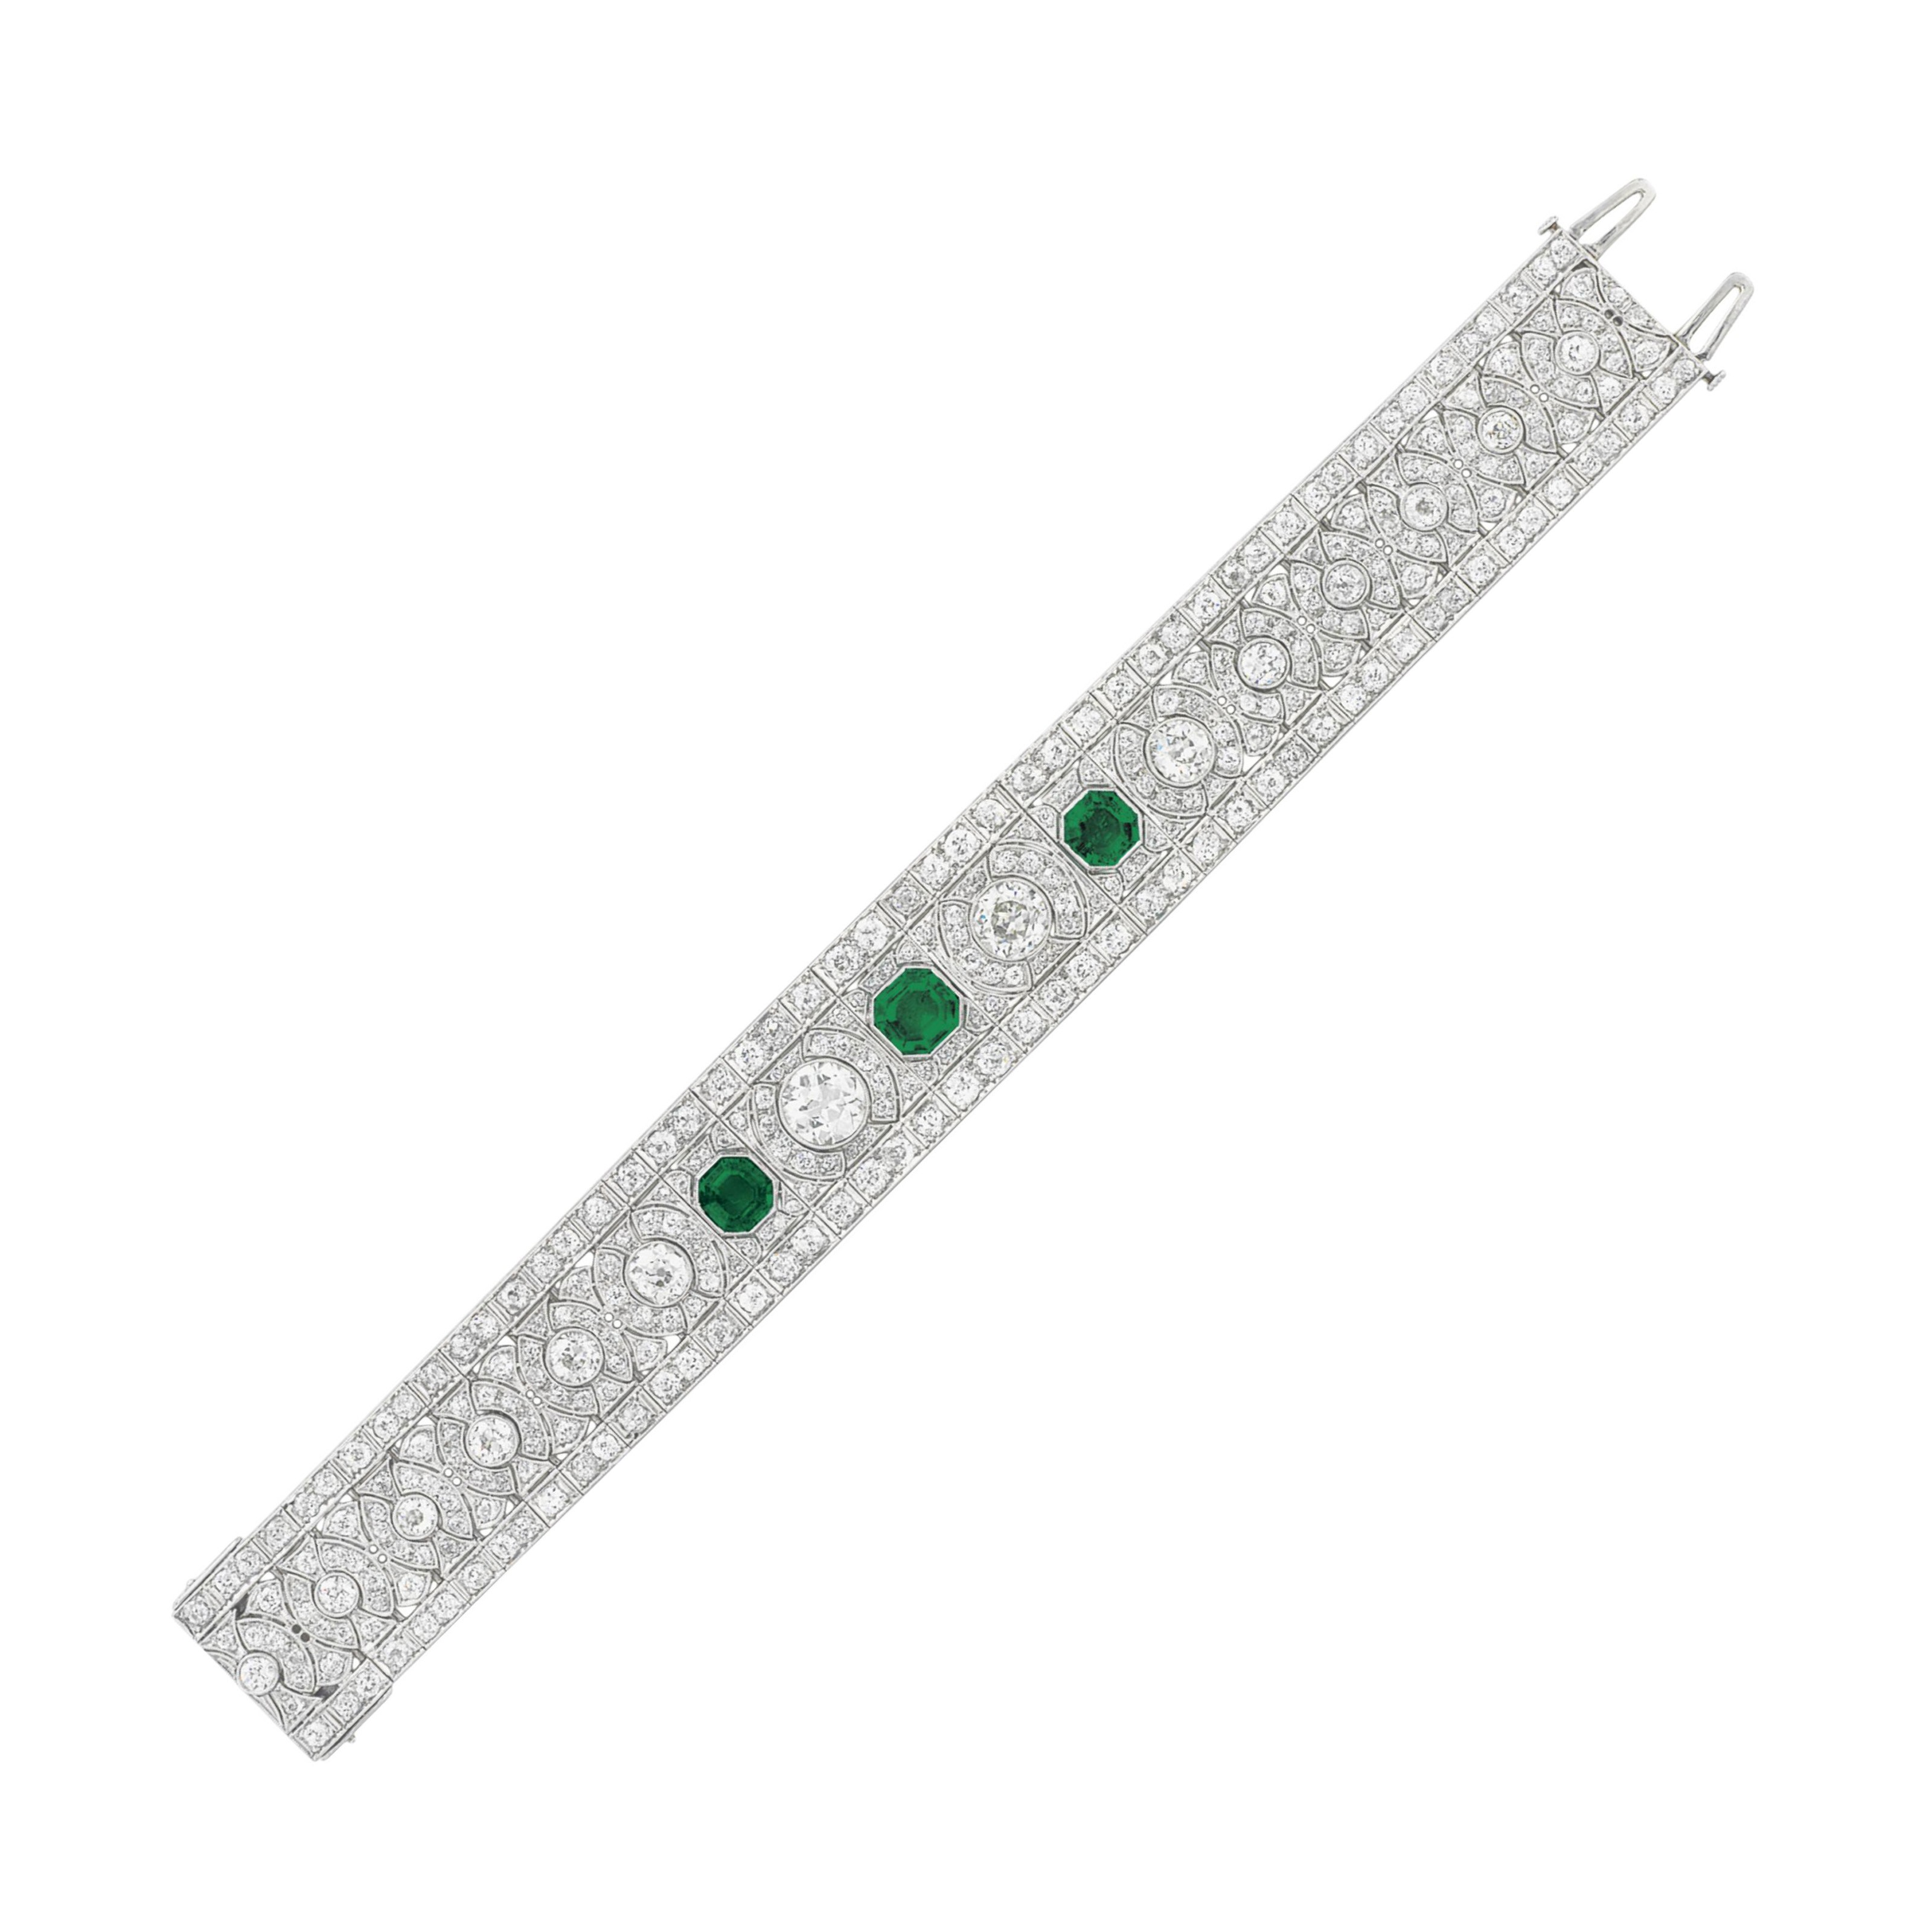 AN ART DECO DIAMOND AND EMERALD BRACELET, BY DREICER & CO.